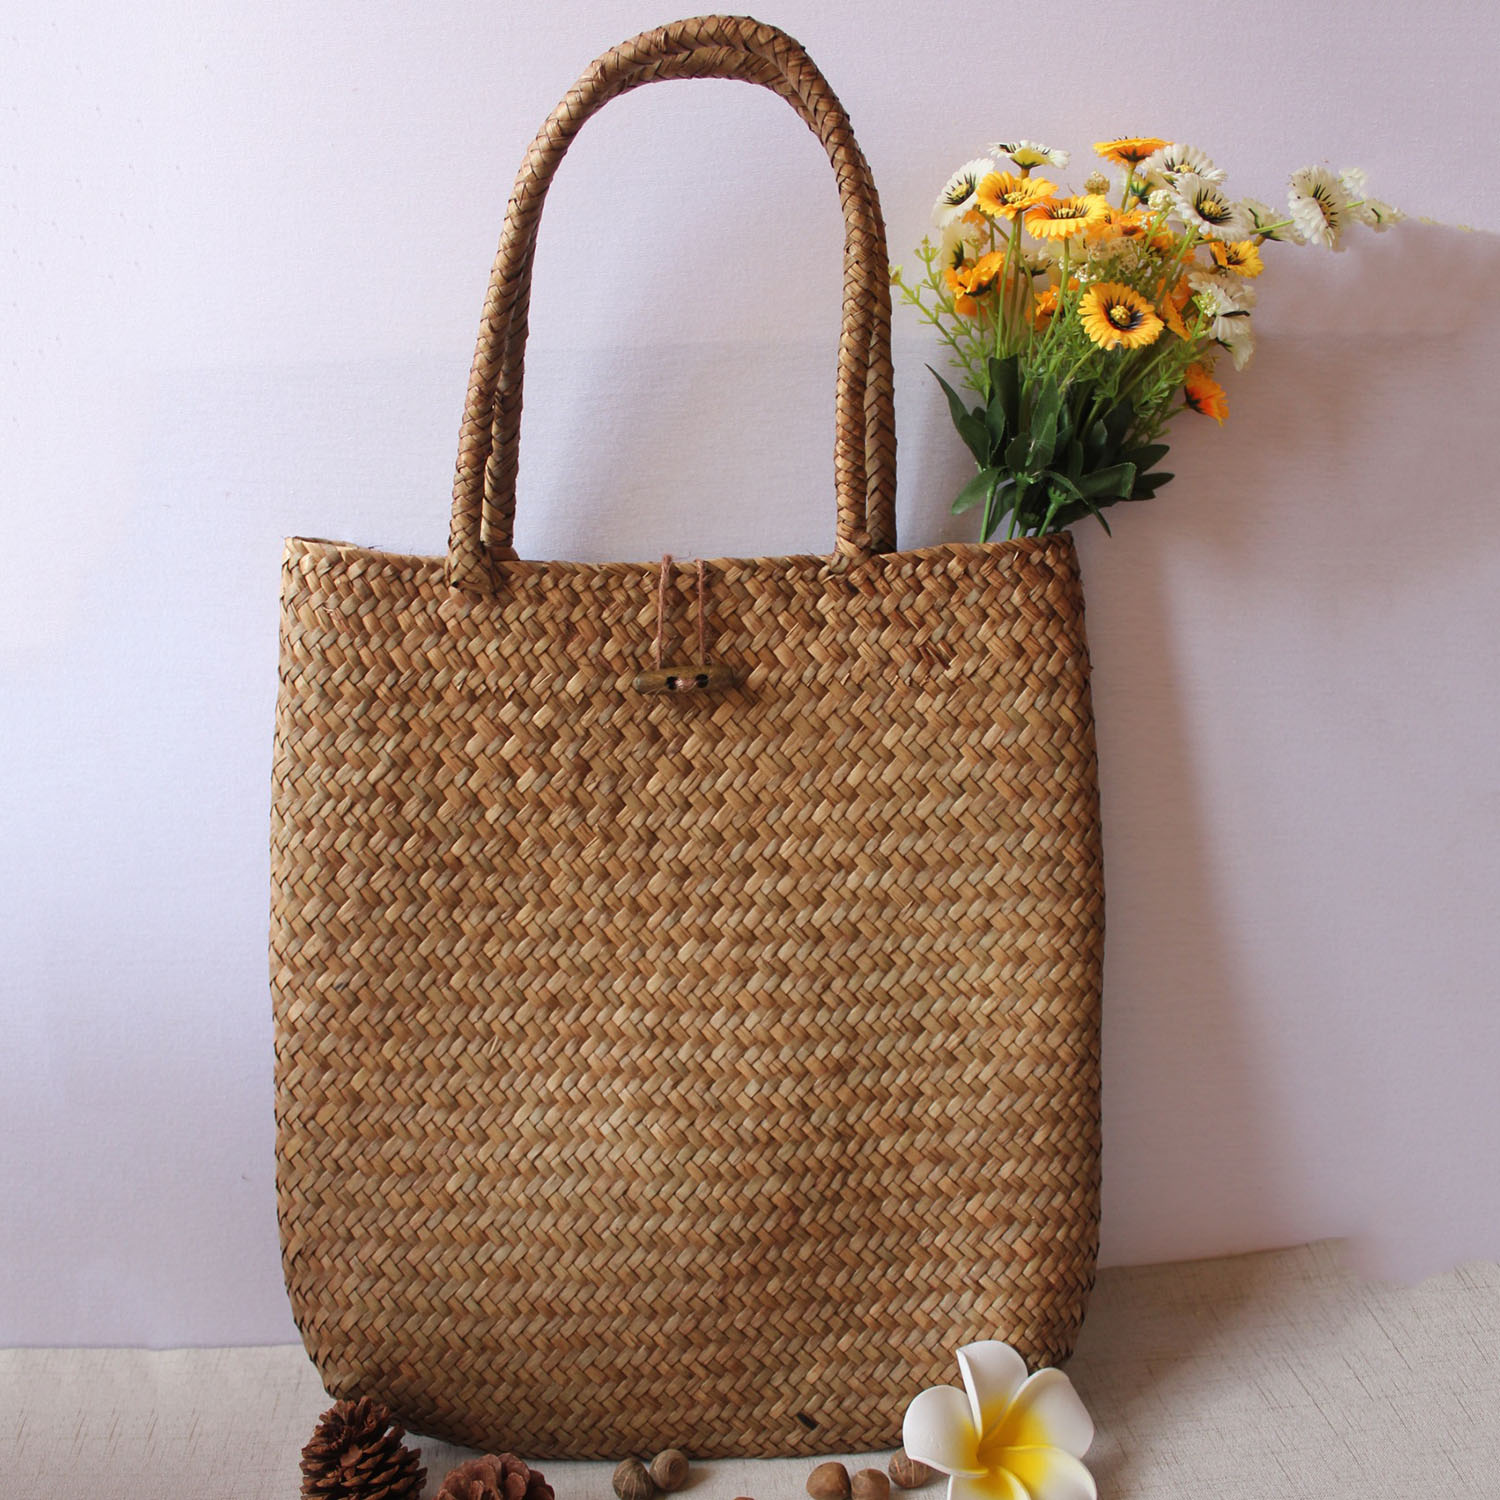 Women Fashion Designer Lace Handbags Tote Bags Handbag Wicker Rattan Bag Shoulder Bag Shopping Straw Bag 8